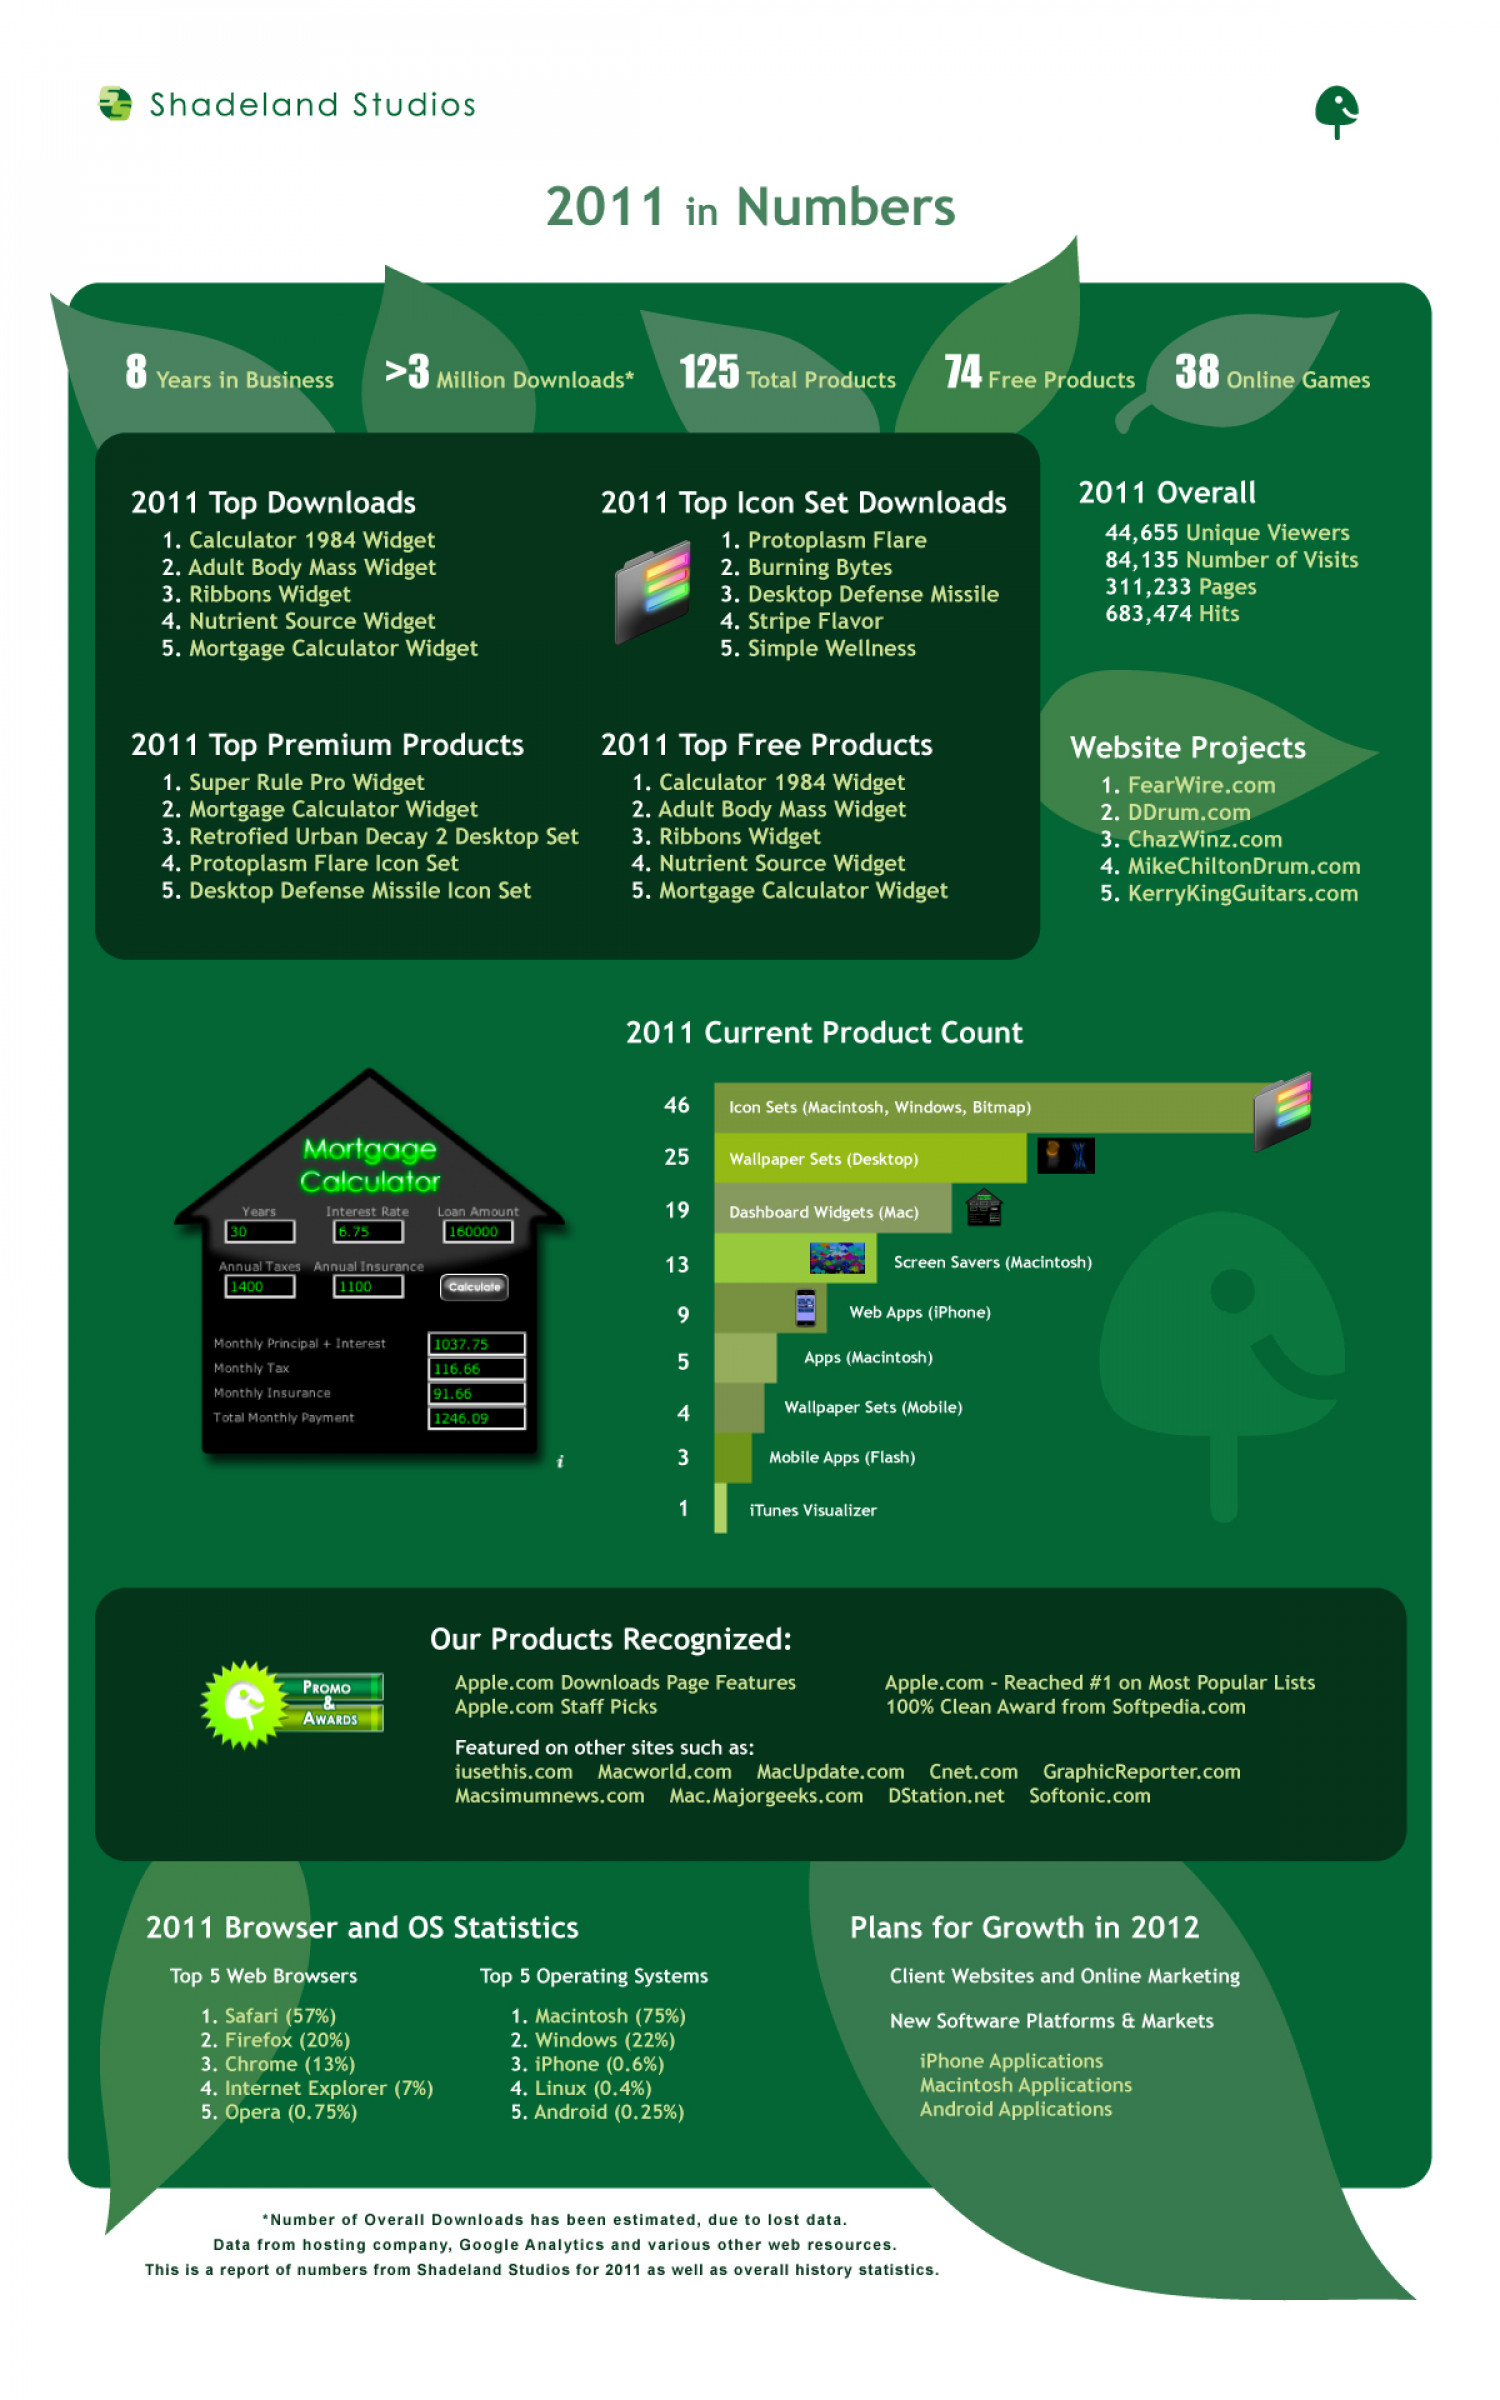 Shadeland Studios: 2011 in Numbers Infographic